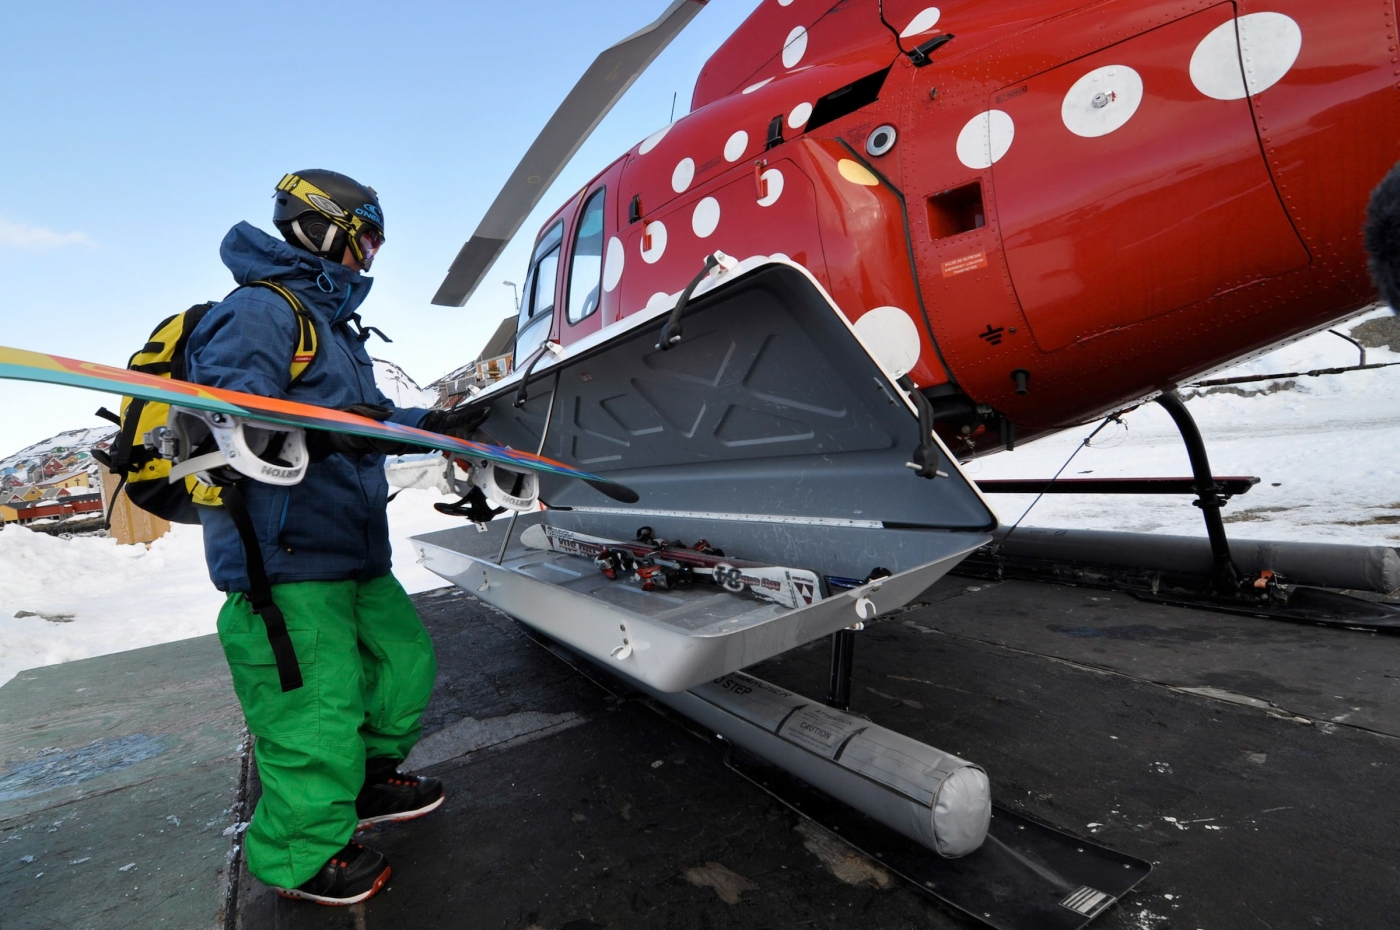 Helicopter ski luggage. Photo by Mads Pihl - Visit Greenland